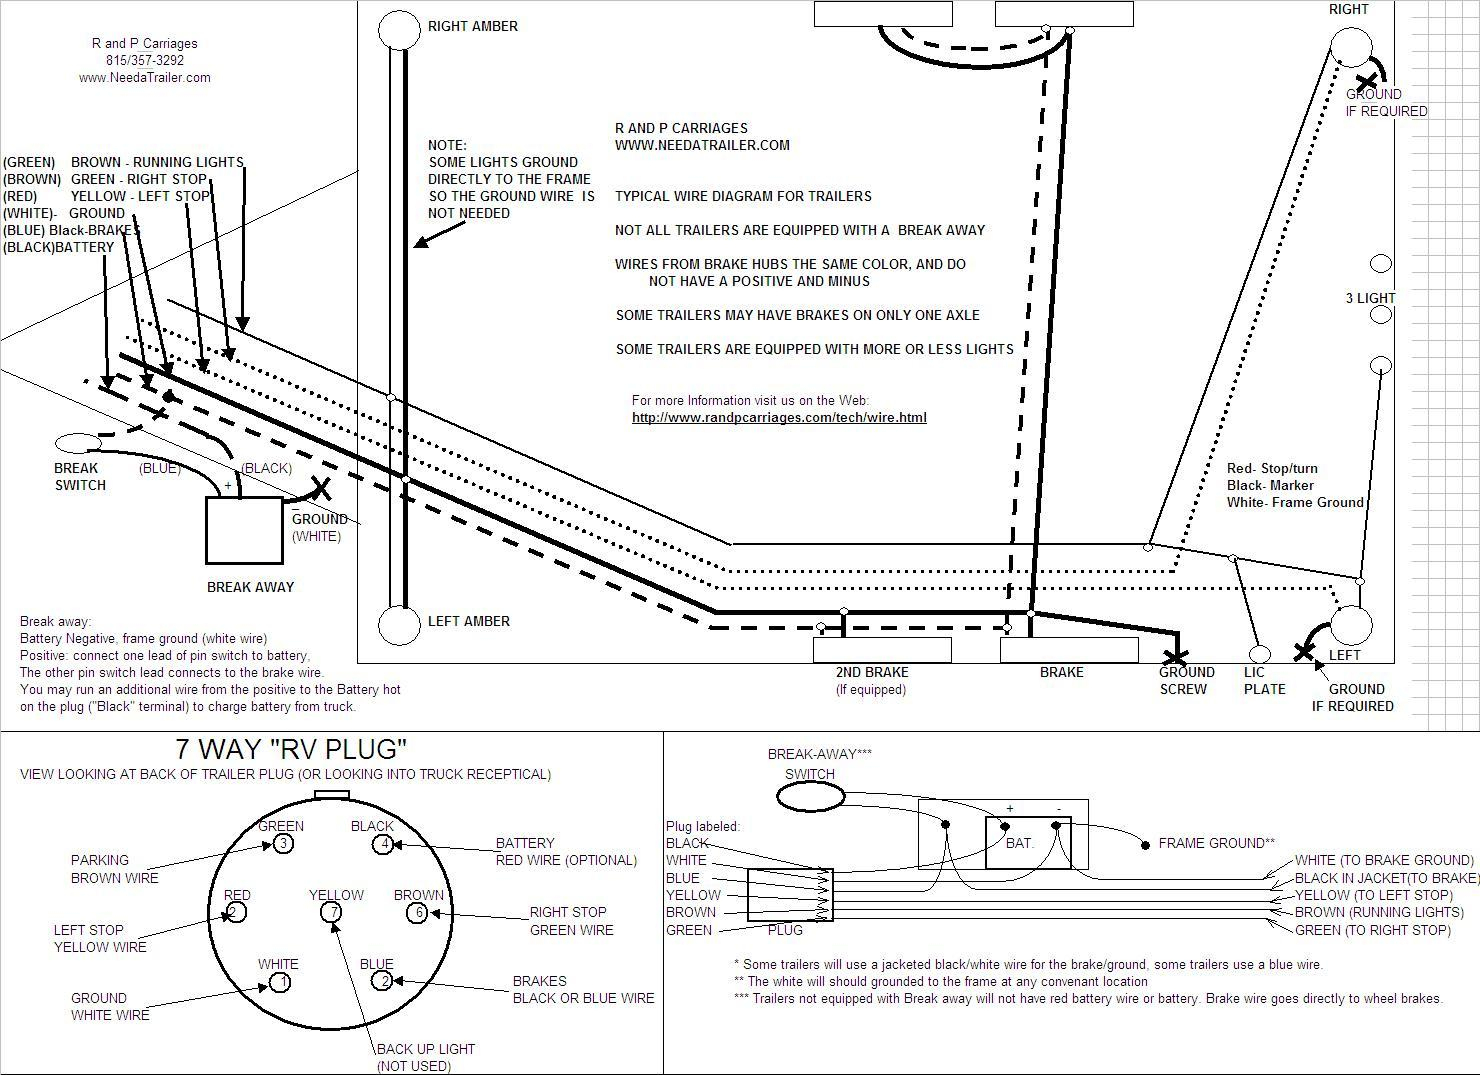 Plug Wiring Diagram For Truck | Wiring Library - 7 Pin Trailer Wiring Diagram Nz